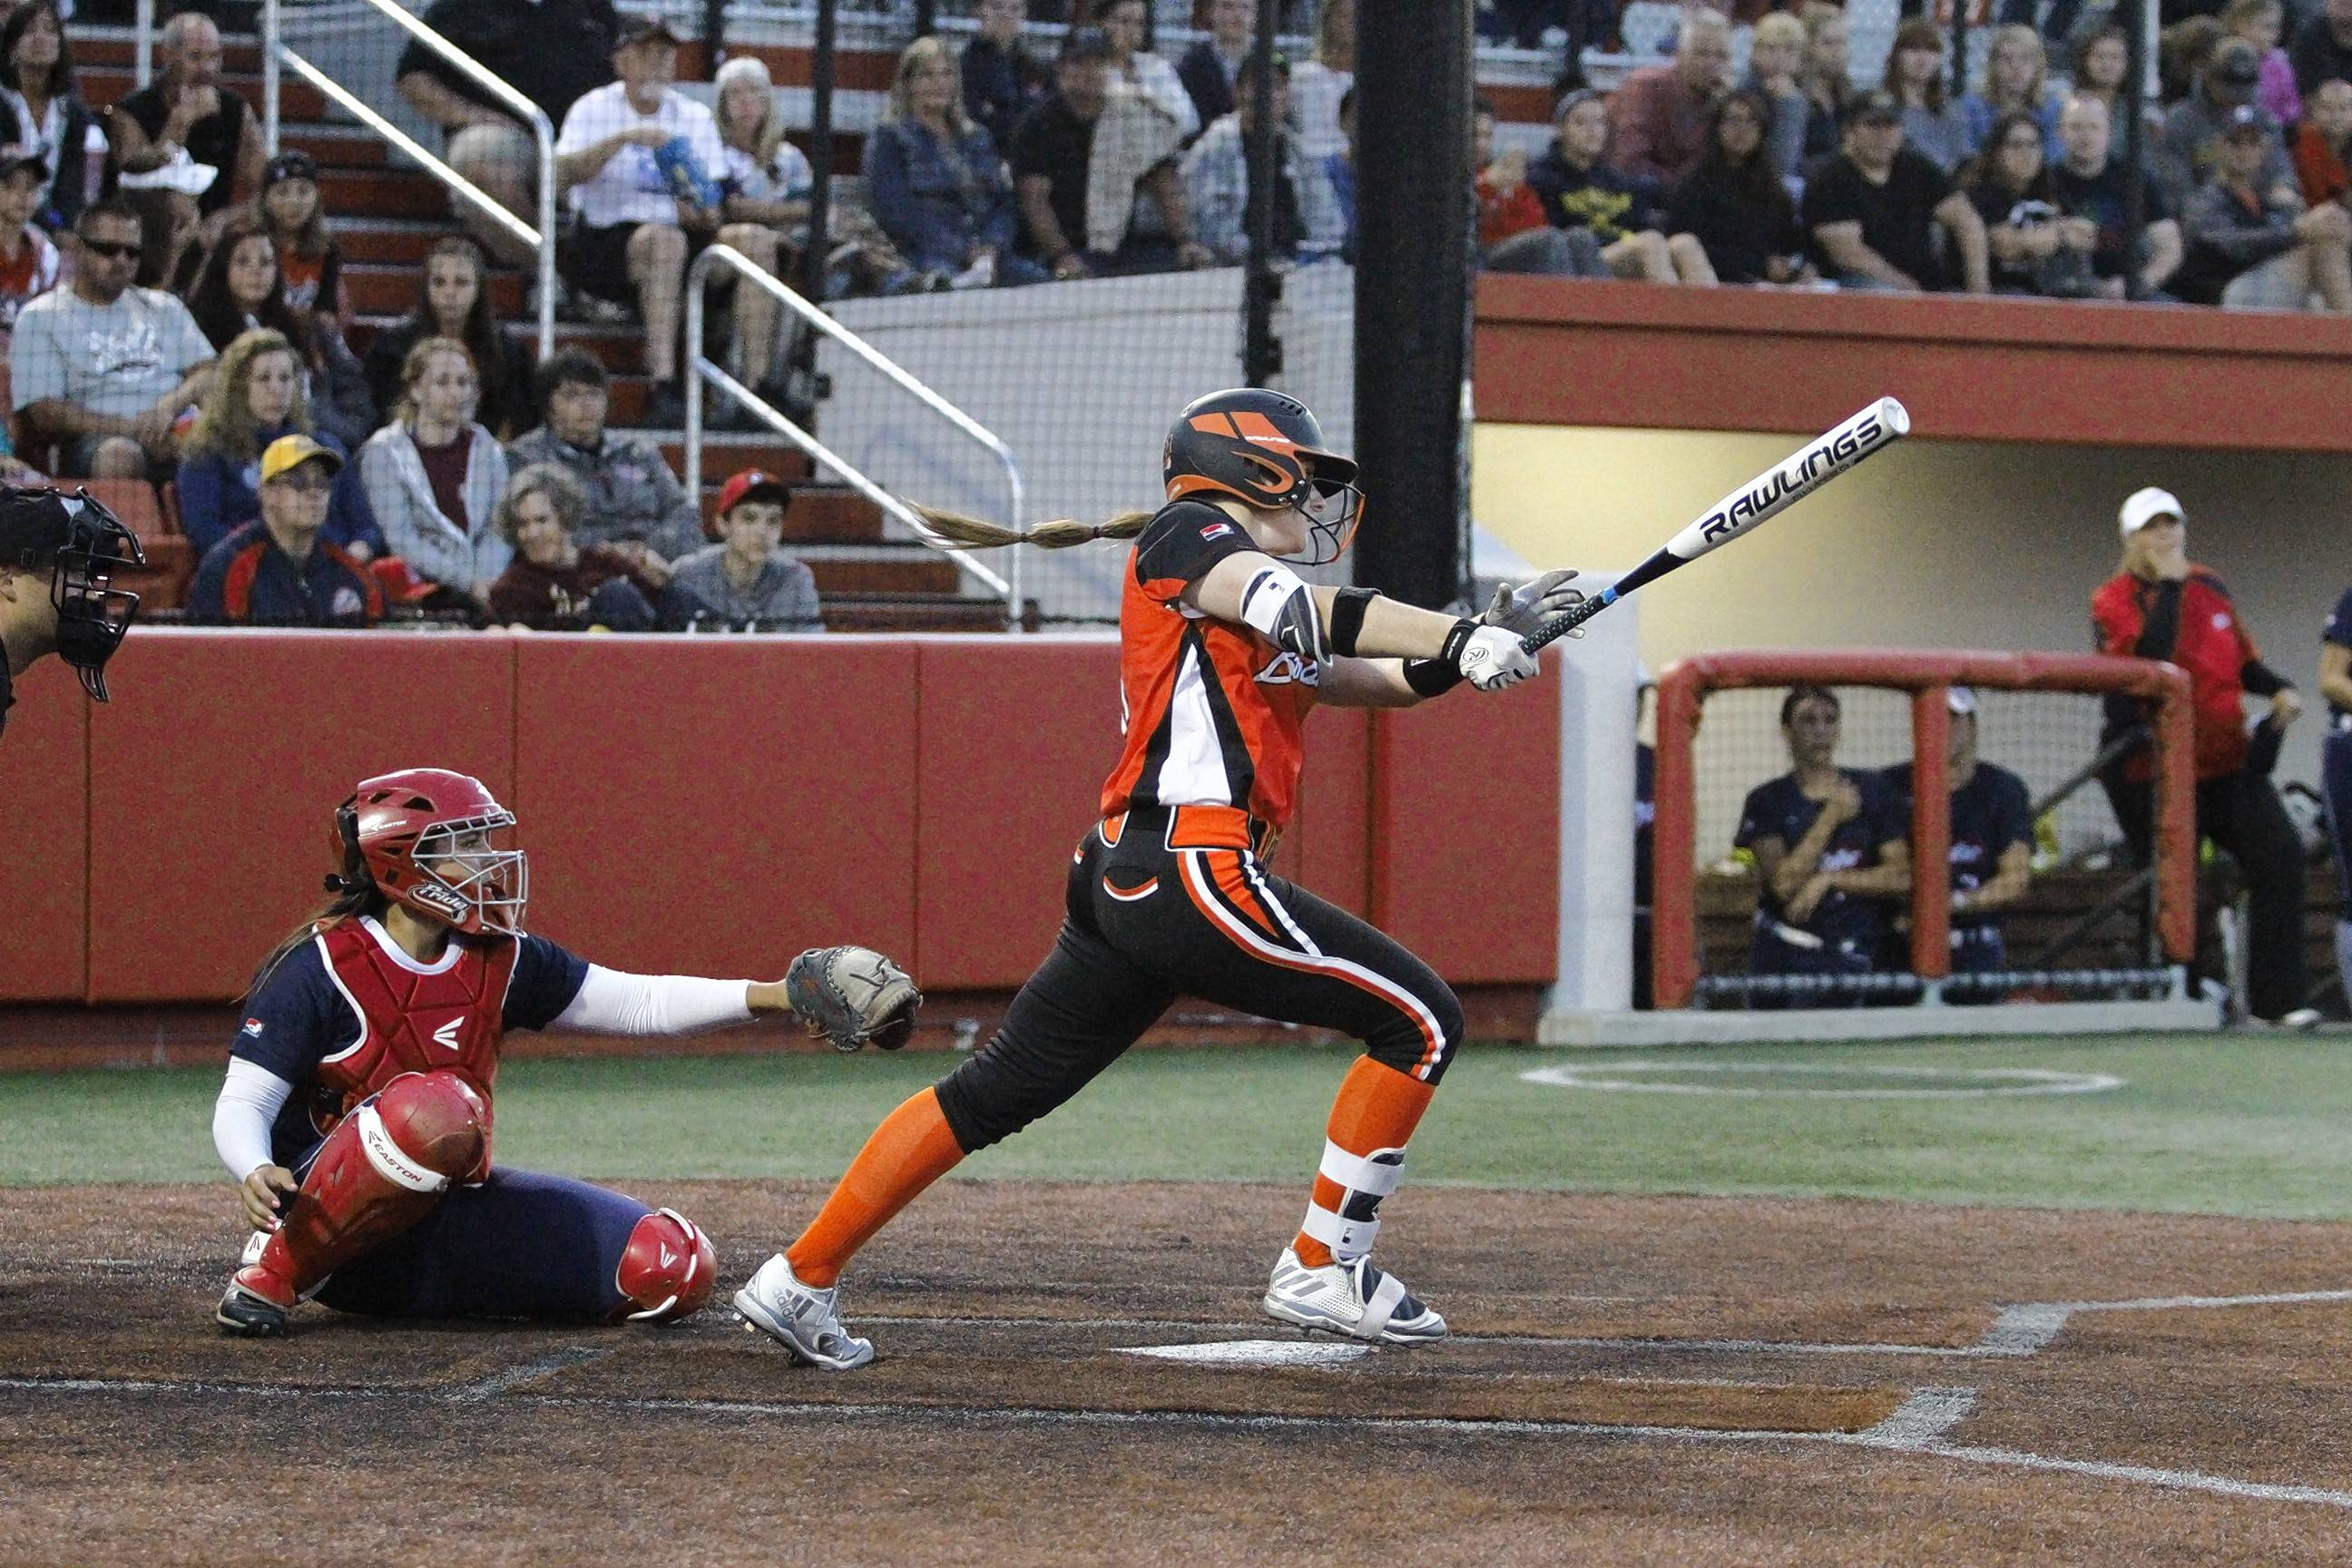 The Chicago Bandits will play the USSSA Pride in the opening round of the NPF Championships this week.